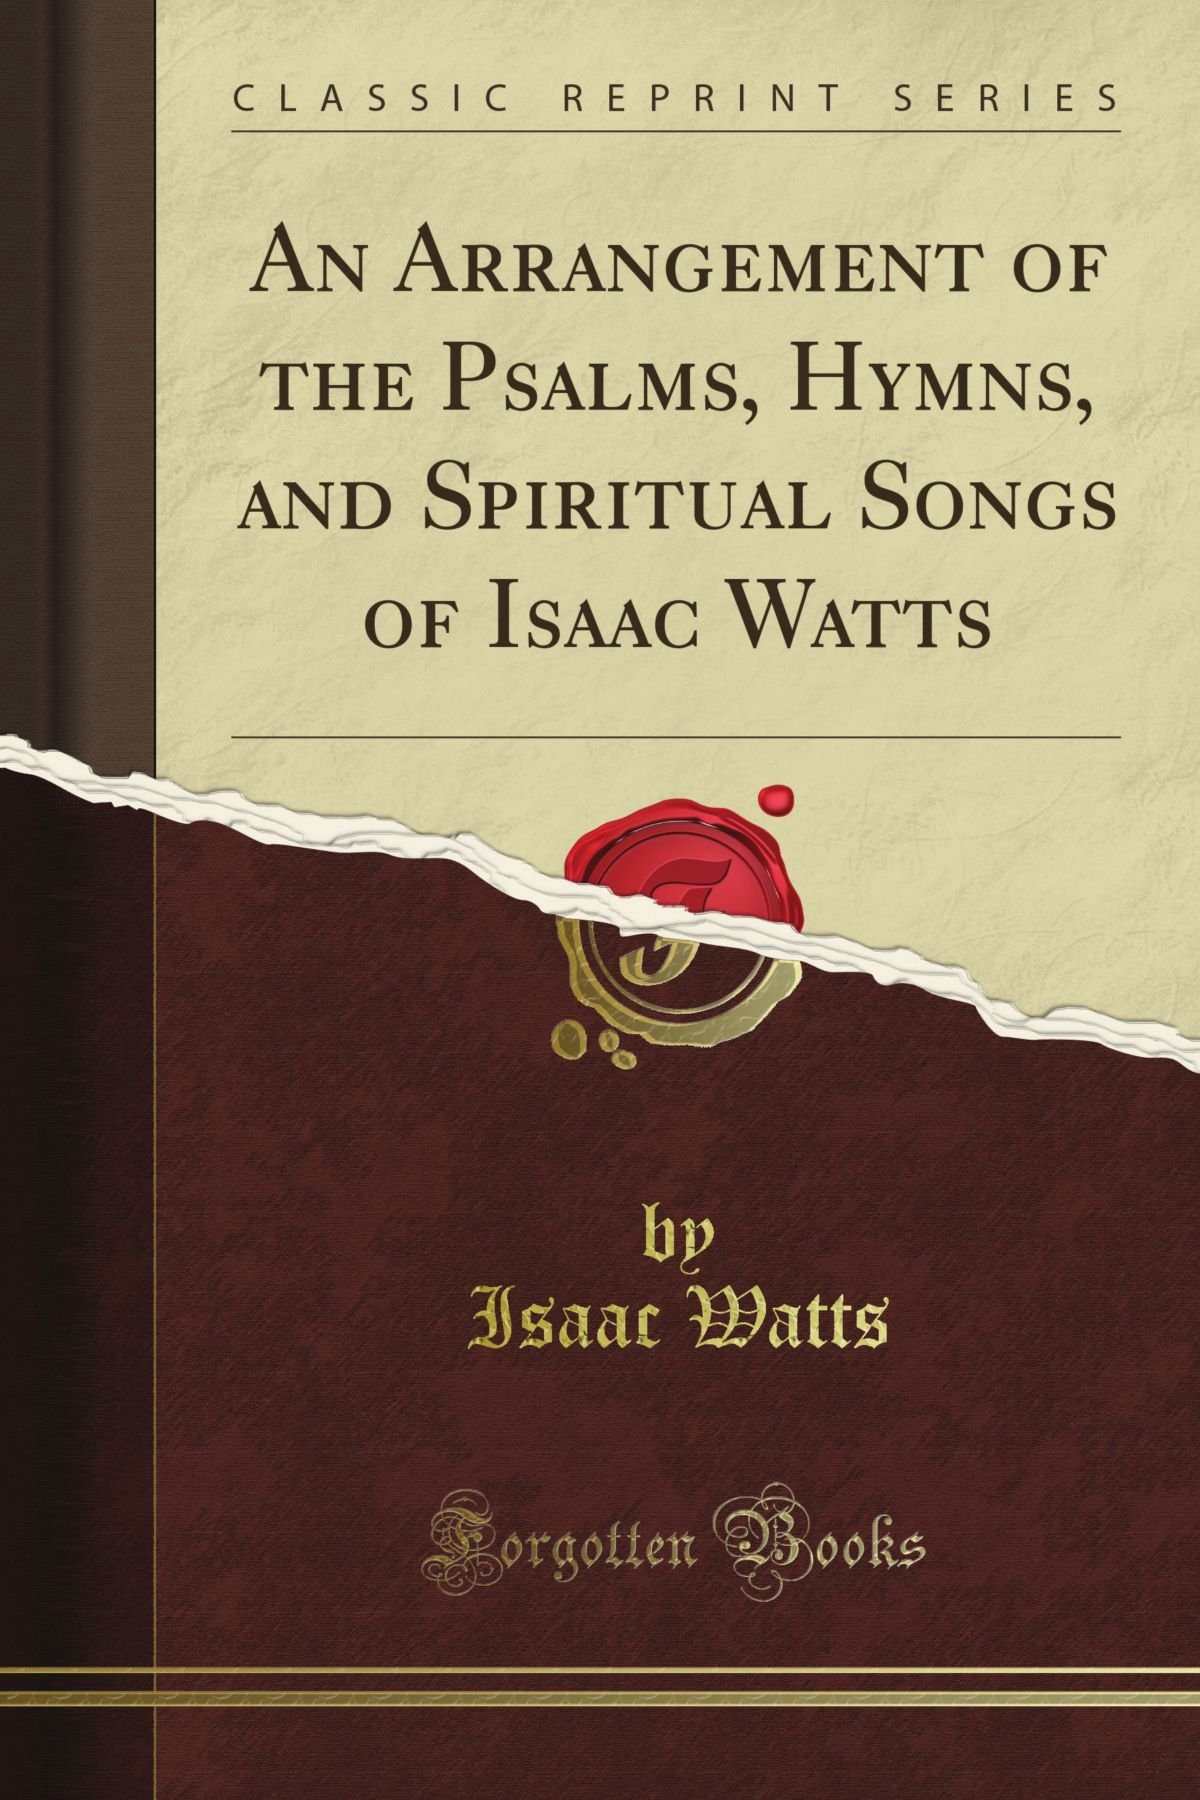 Download An Arrangement of the Psalms, Hymns, and Spiritual Songs of Isaac Watts (Classic Reprint) ebook